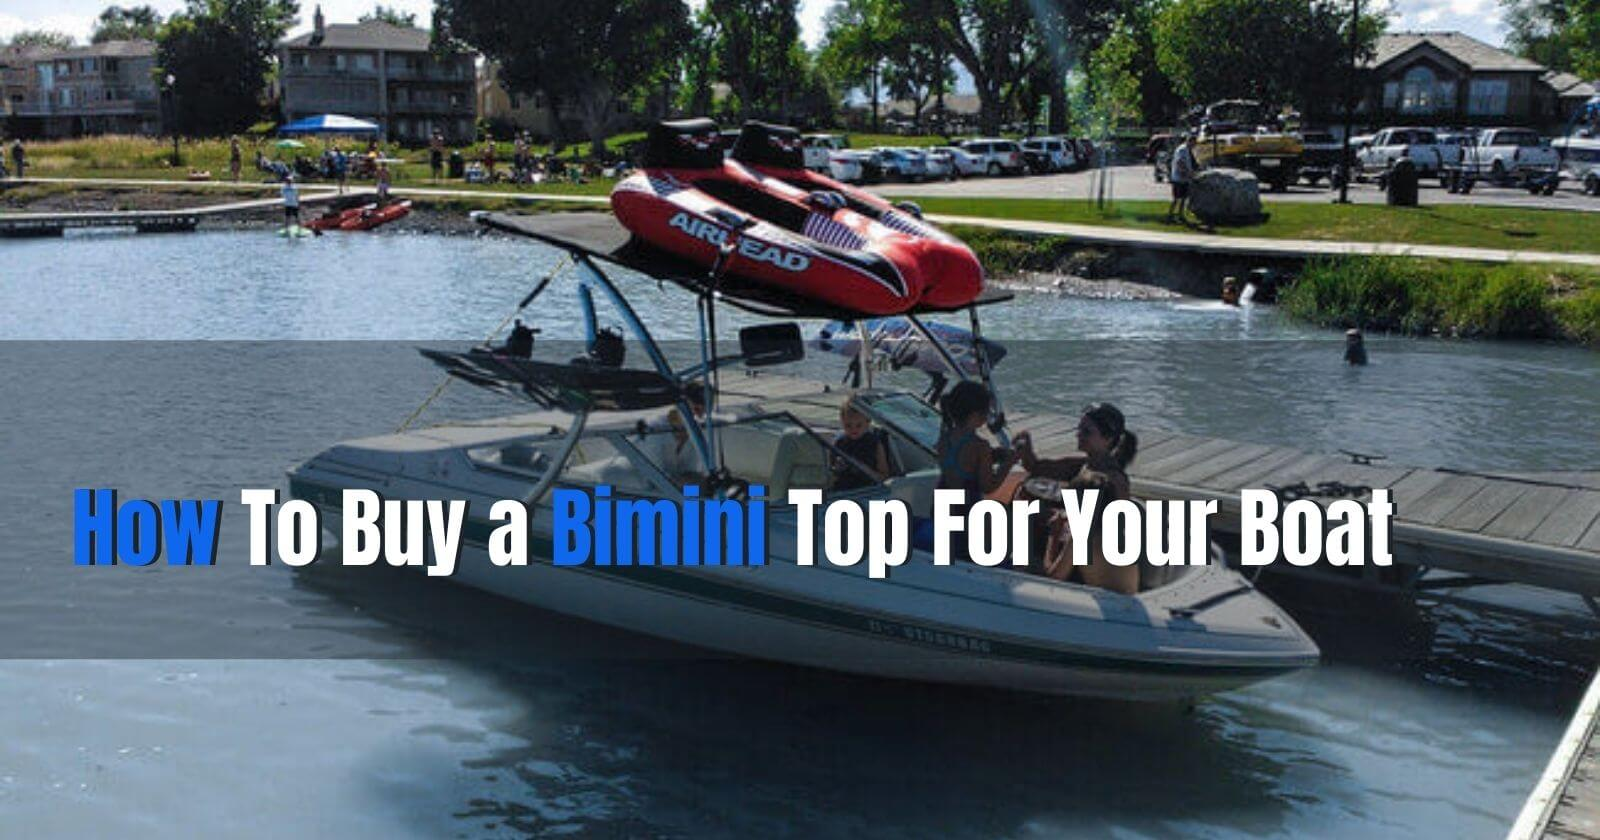 How To Buy a Bimini Top For Your Boat